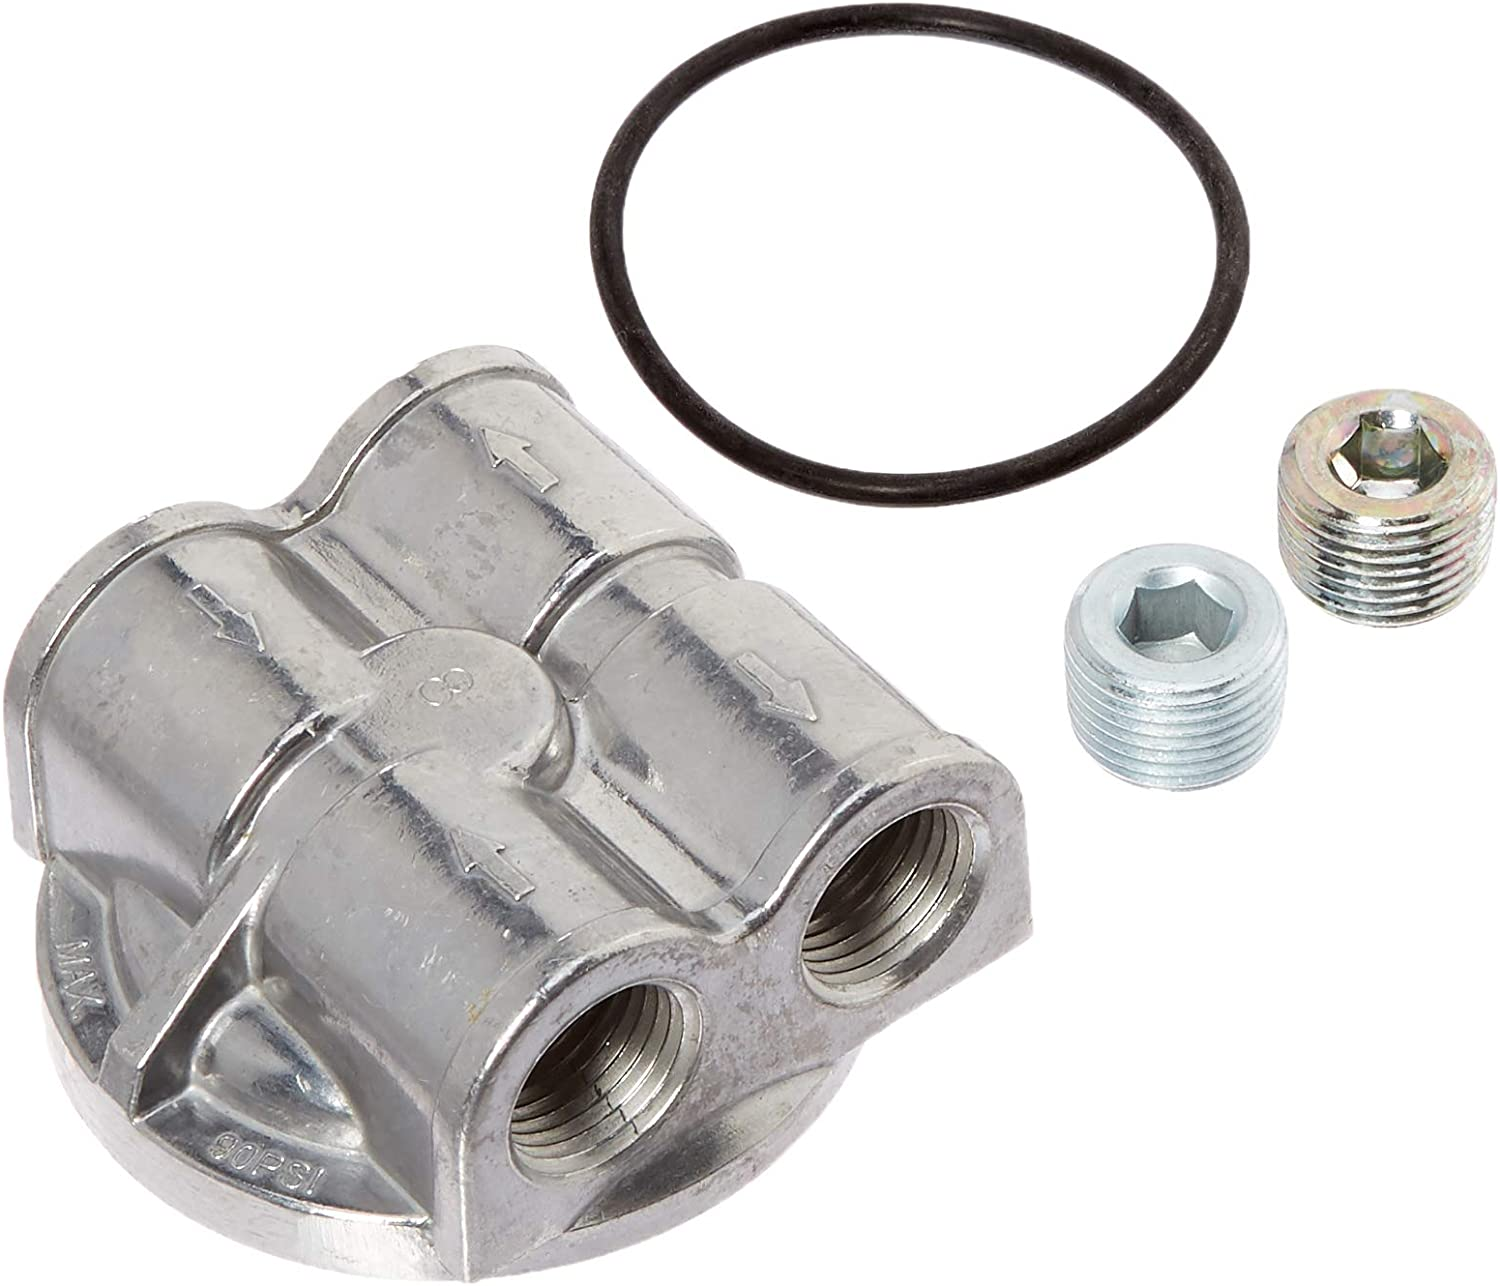 Trans-Dapt 1458 Oil Filter Bypass Adapter